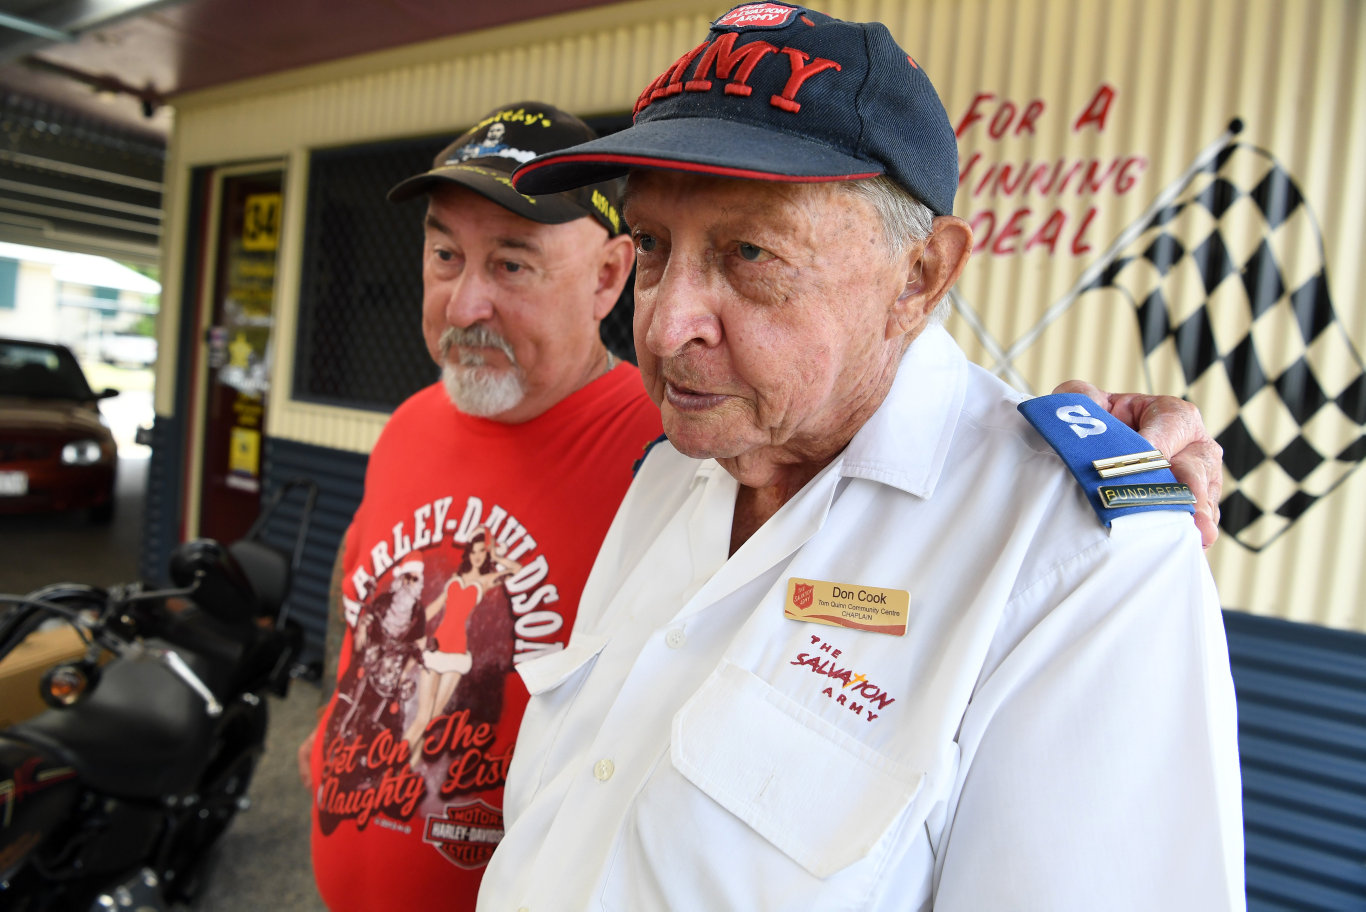 MOTORCYCLE TOY RUN: John Smithy Smith and Don Cook gearing up for last year's charity event.